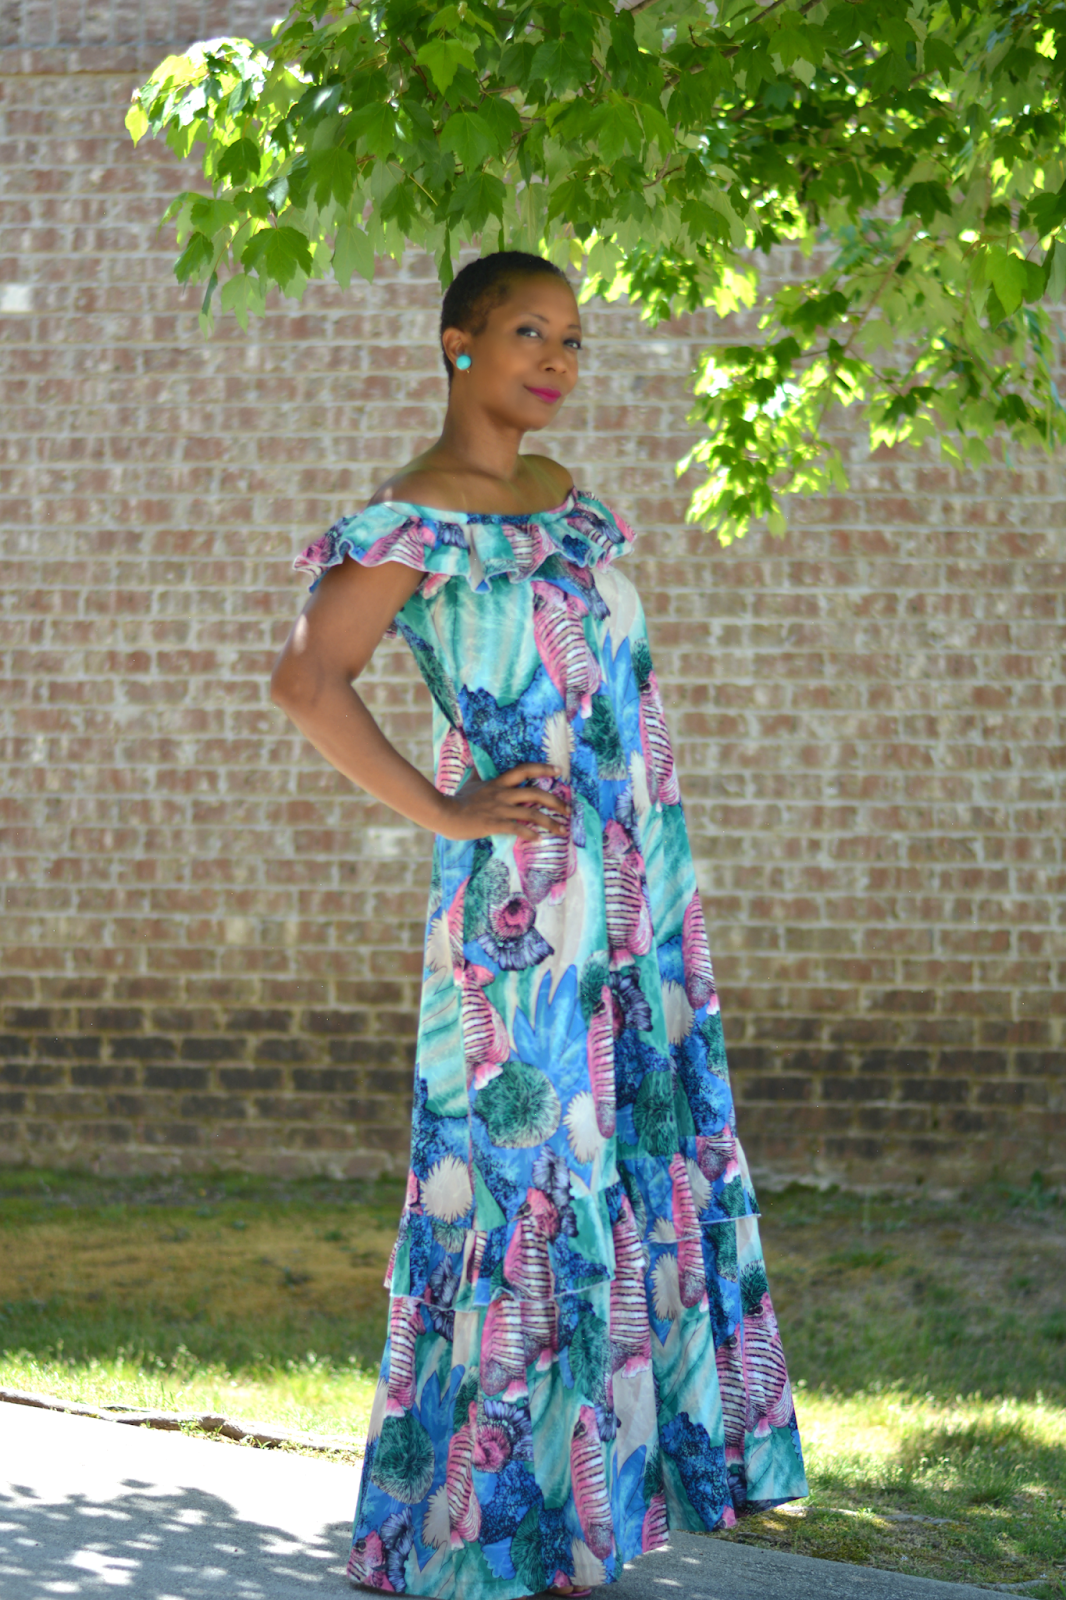 Refashion and downsizing of a vintage thrift store muumuu to a chic summer off the shoulder maxi dress.